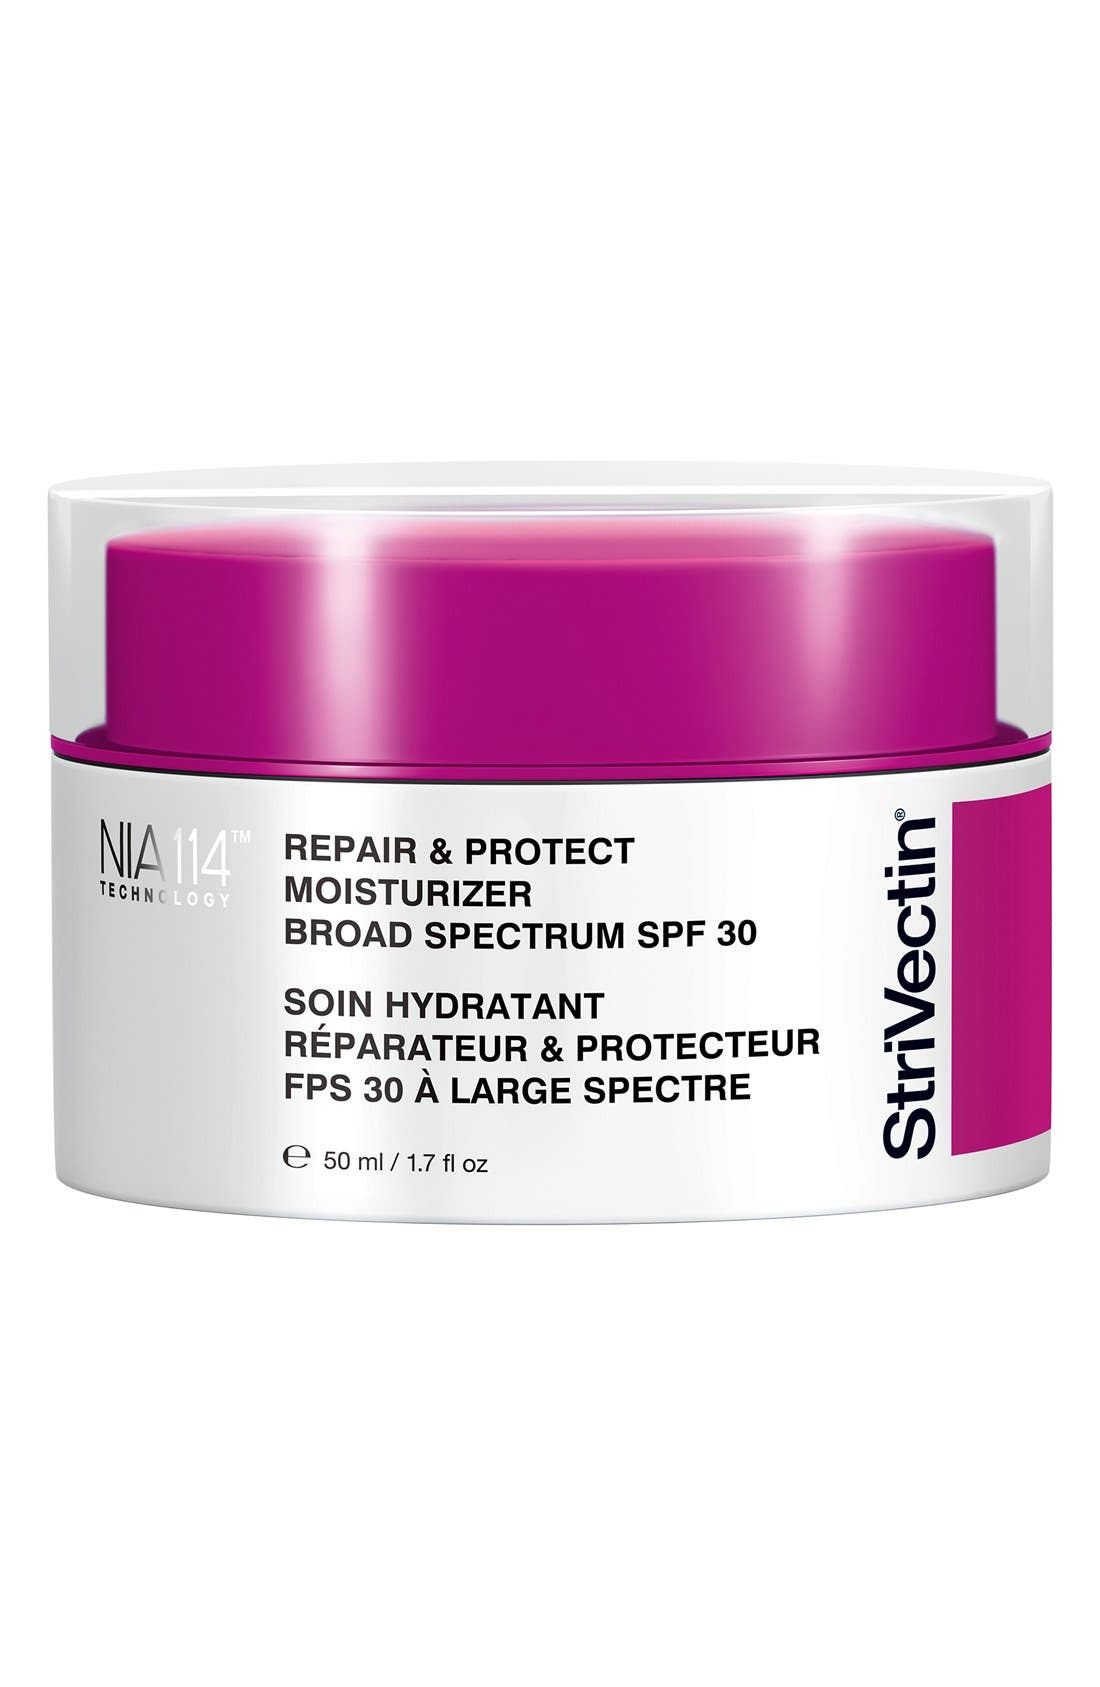 StriVectin® Repair & Protect Moisturizer Broad Spectrum SPF 30